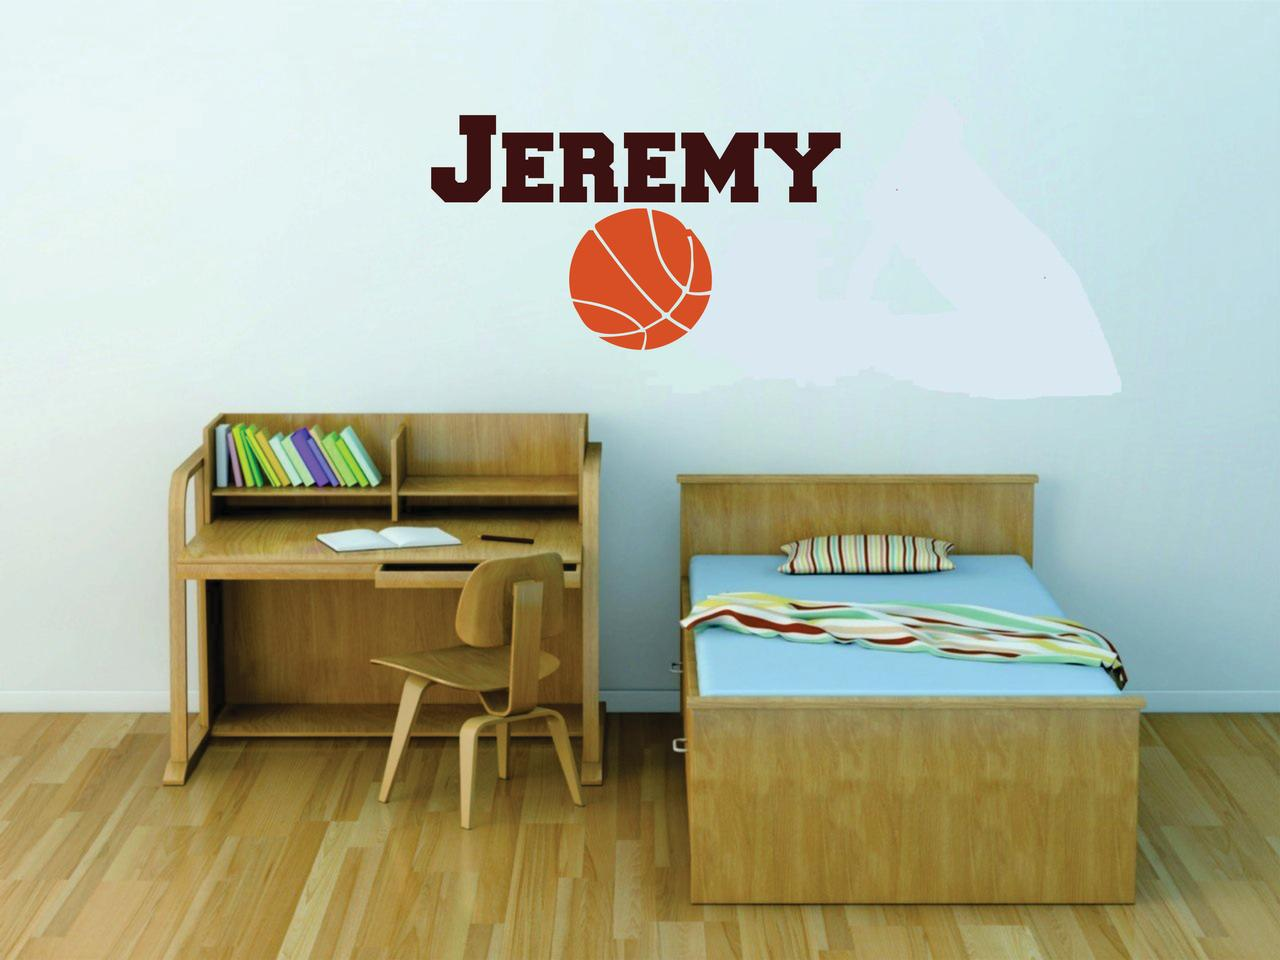 Personalized Name Vinyl Decal Sticker Custom Initial Wall Art Basketball Boys Sports Decor 16 Inches X 20 Inches Walmart Com Walmart Com